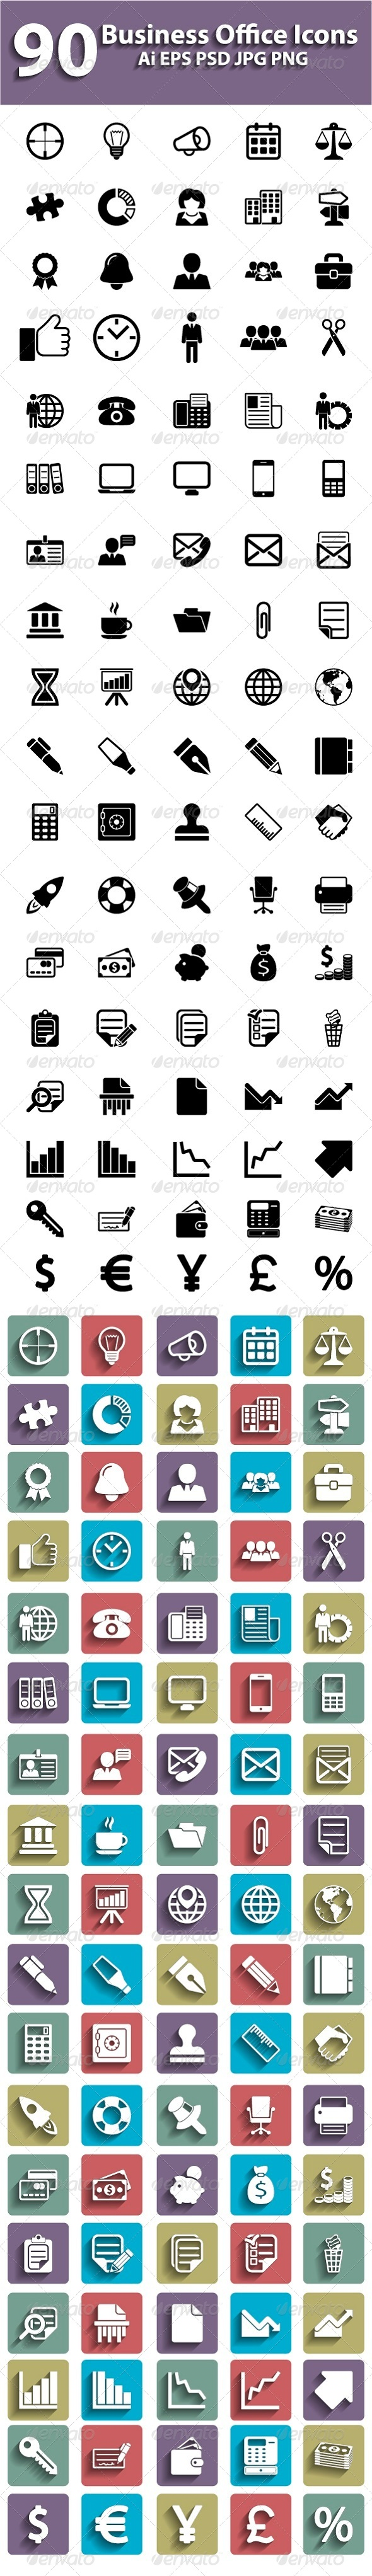 90 Business Icons Set - Business Icons